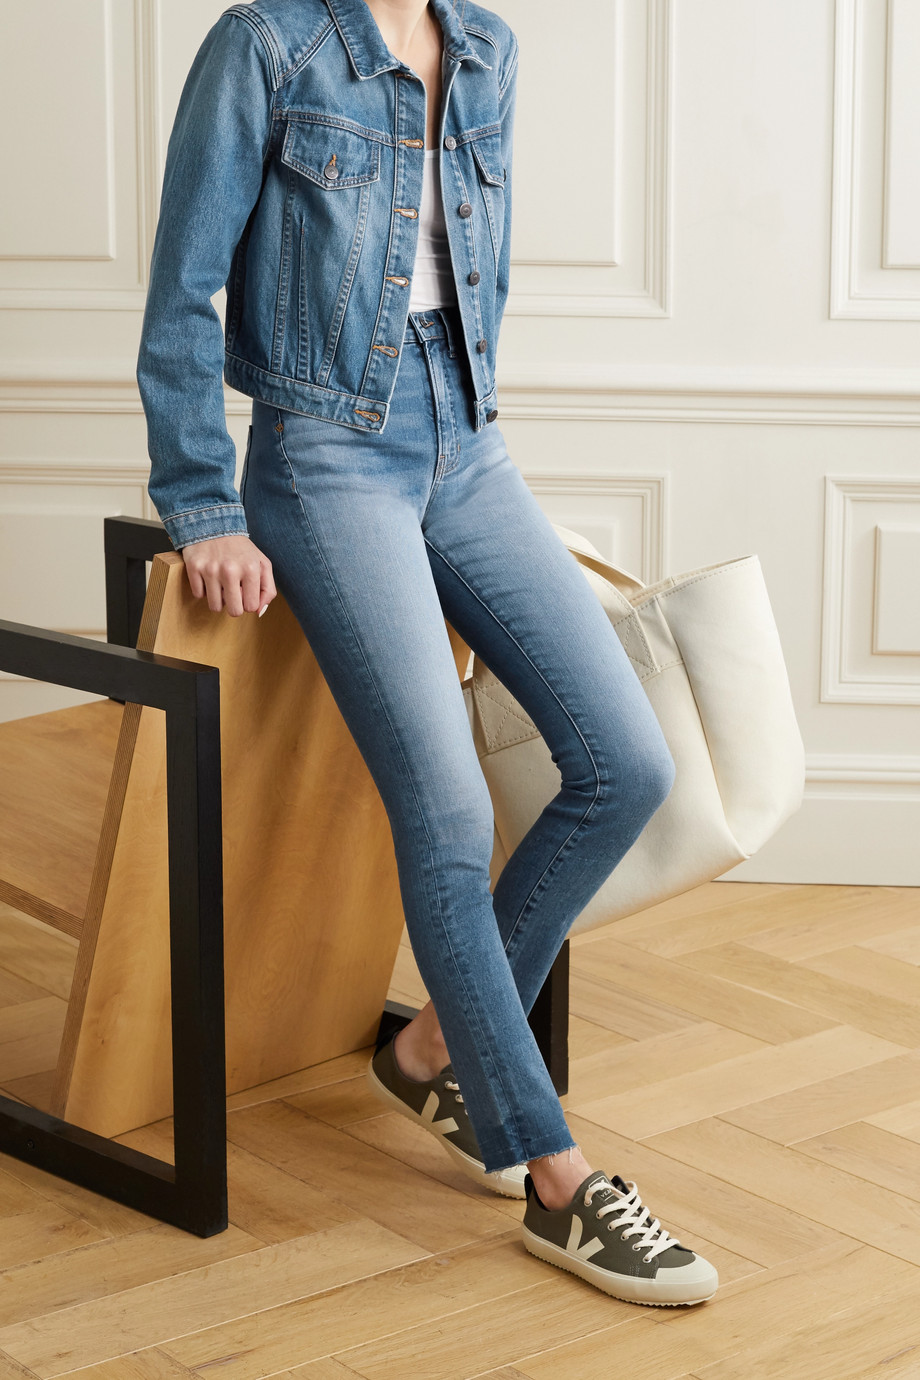 VERONICA BEARD Debbie frayed high-rise skinny jeans